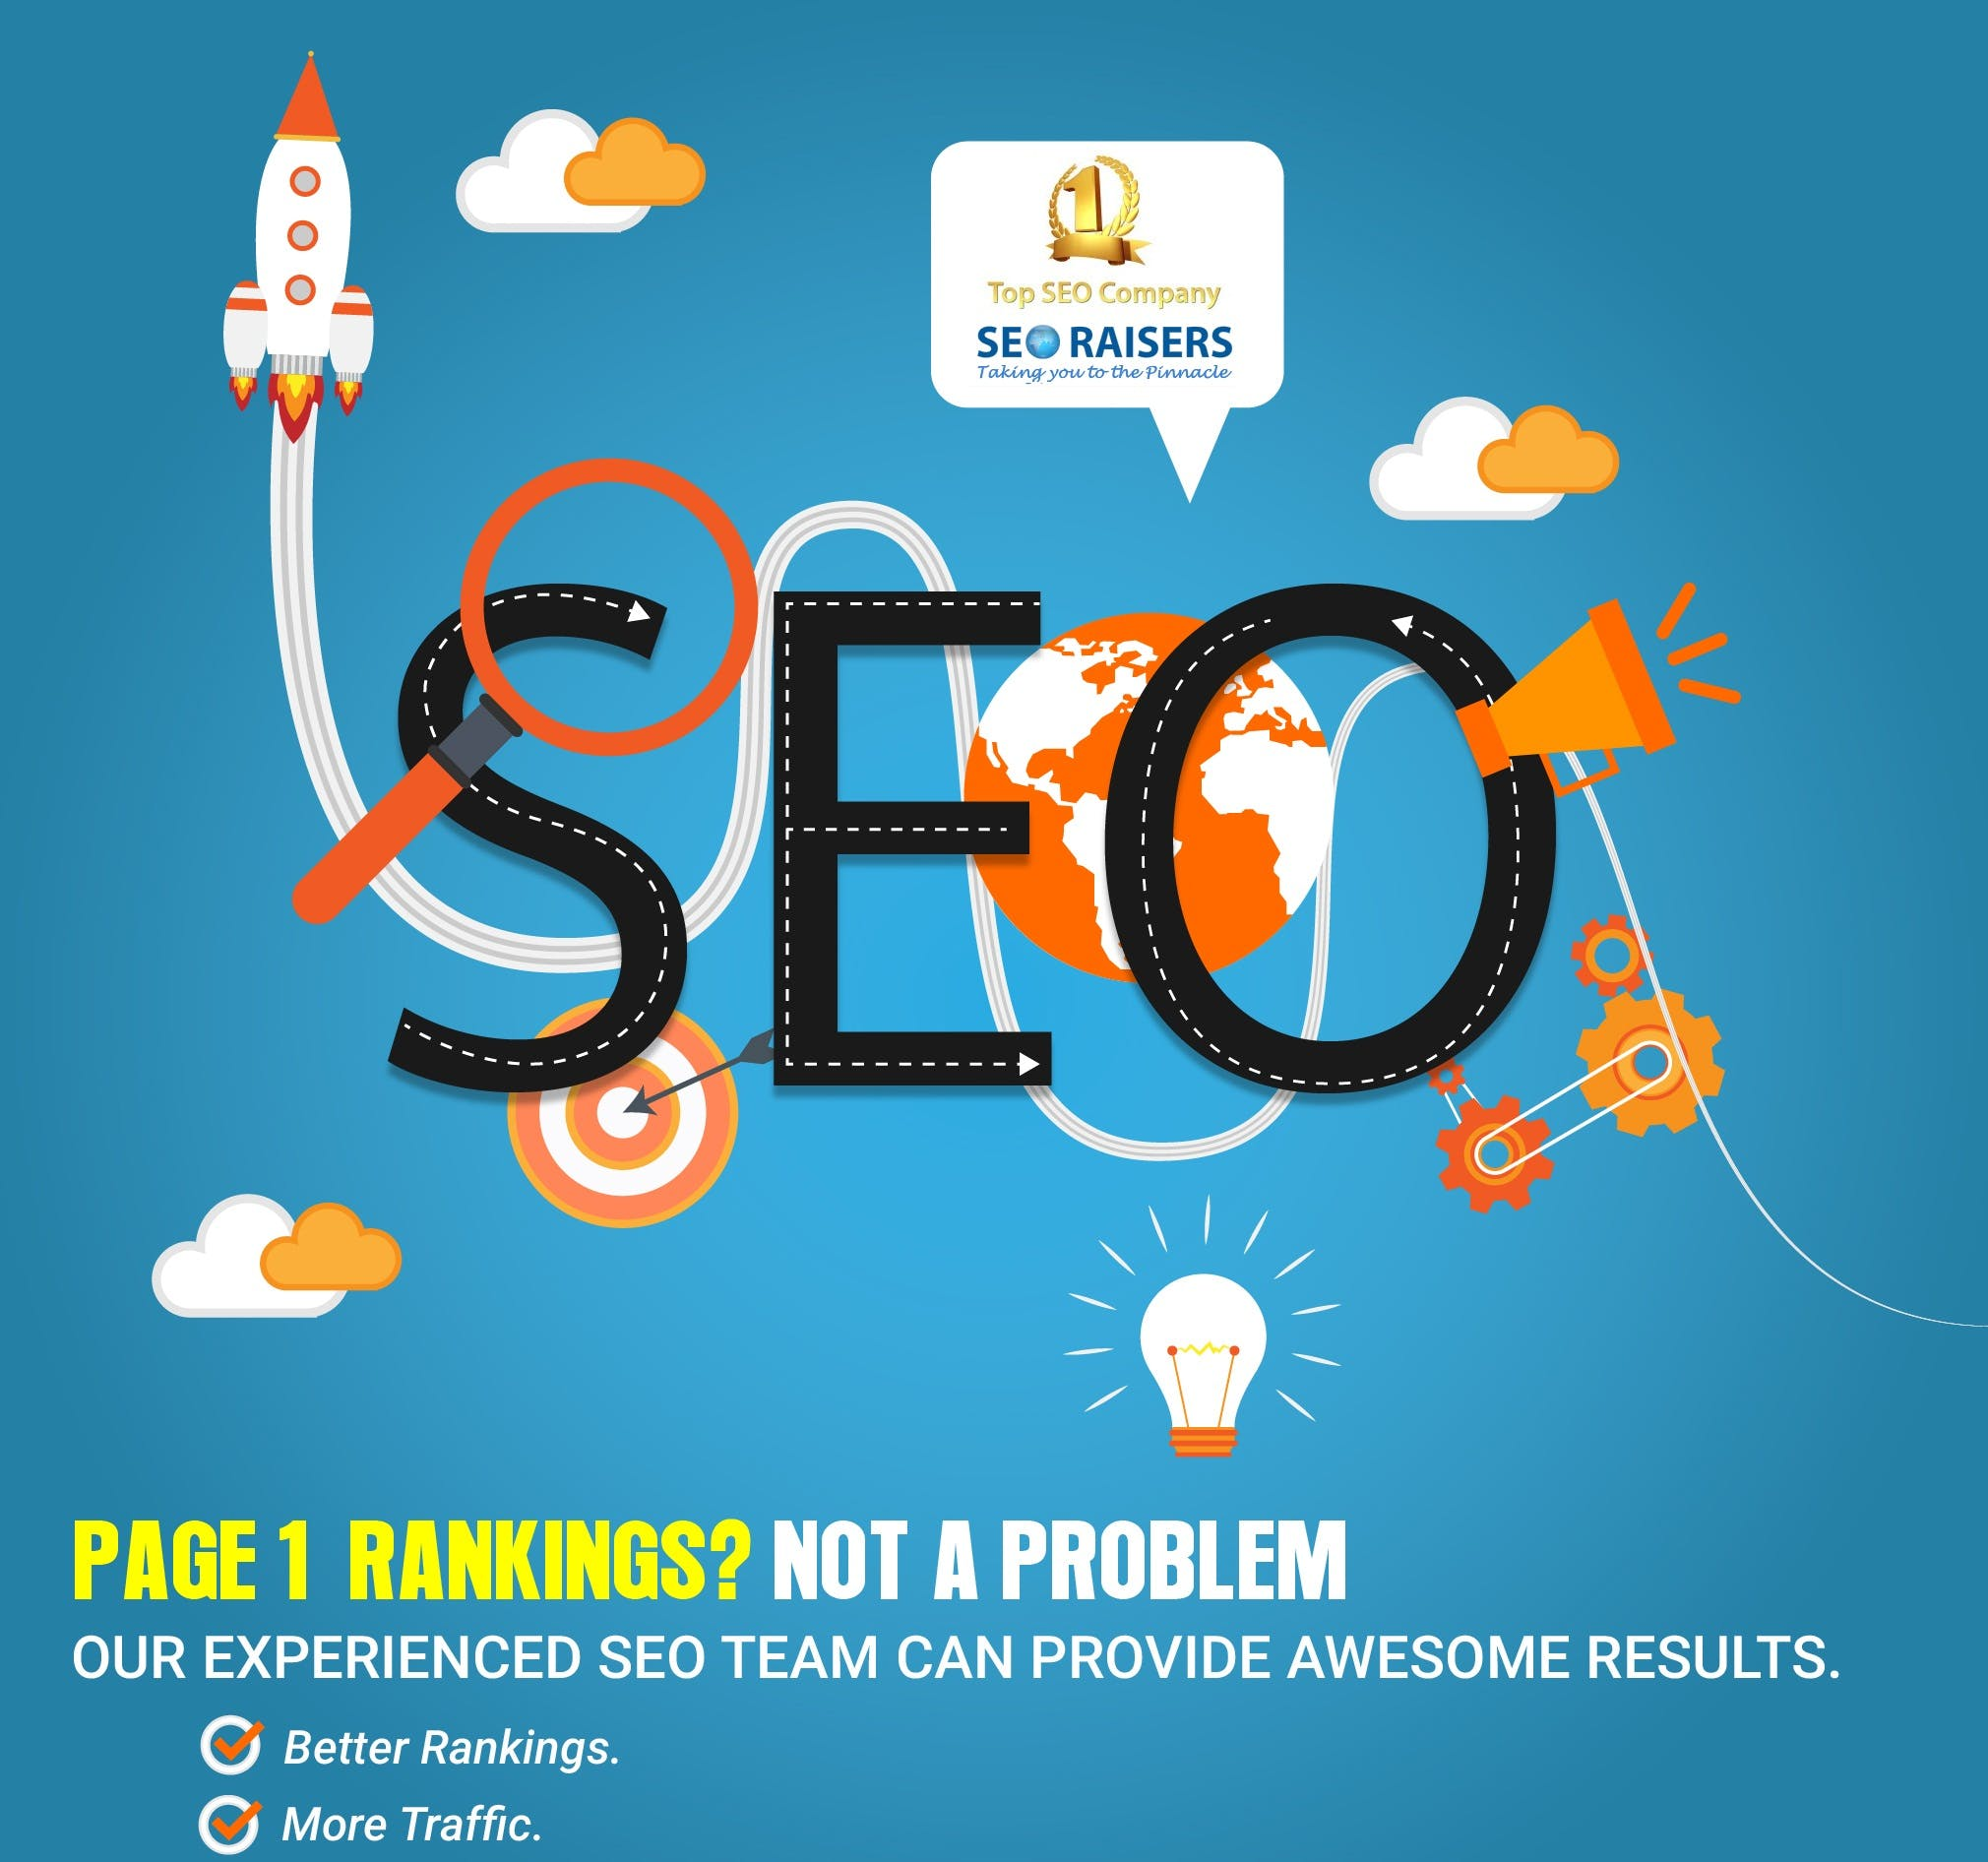 Free stock photo of Page 1 Ranking With SEORAISERS